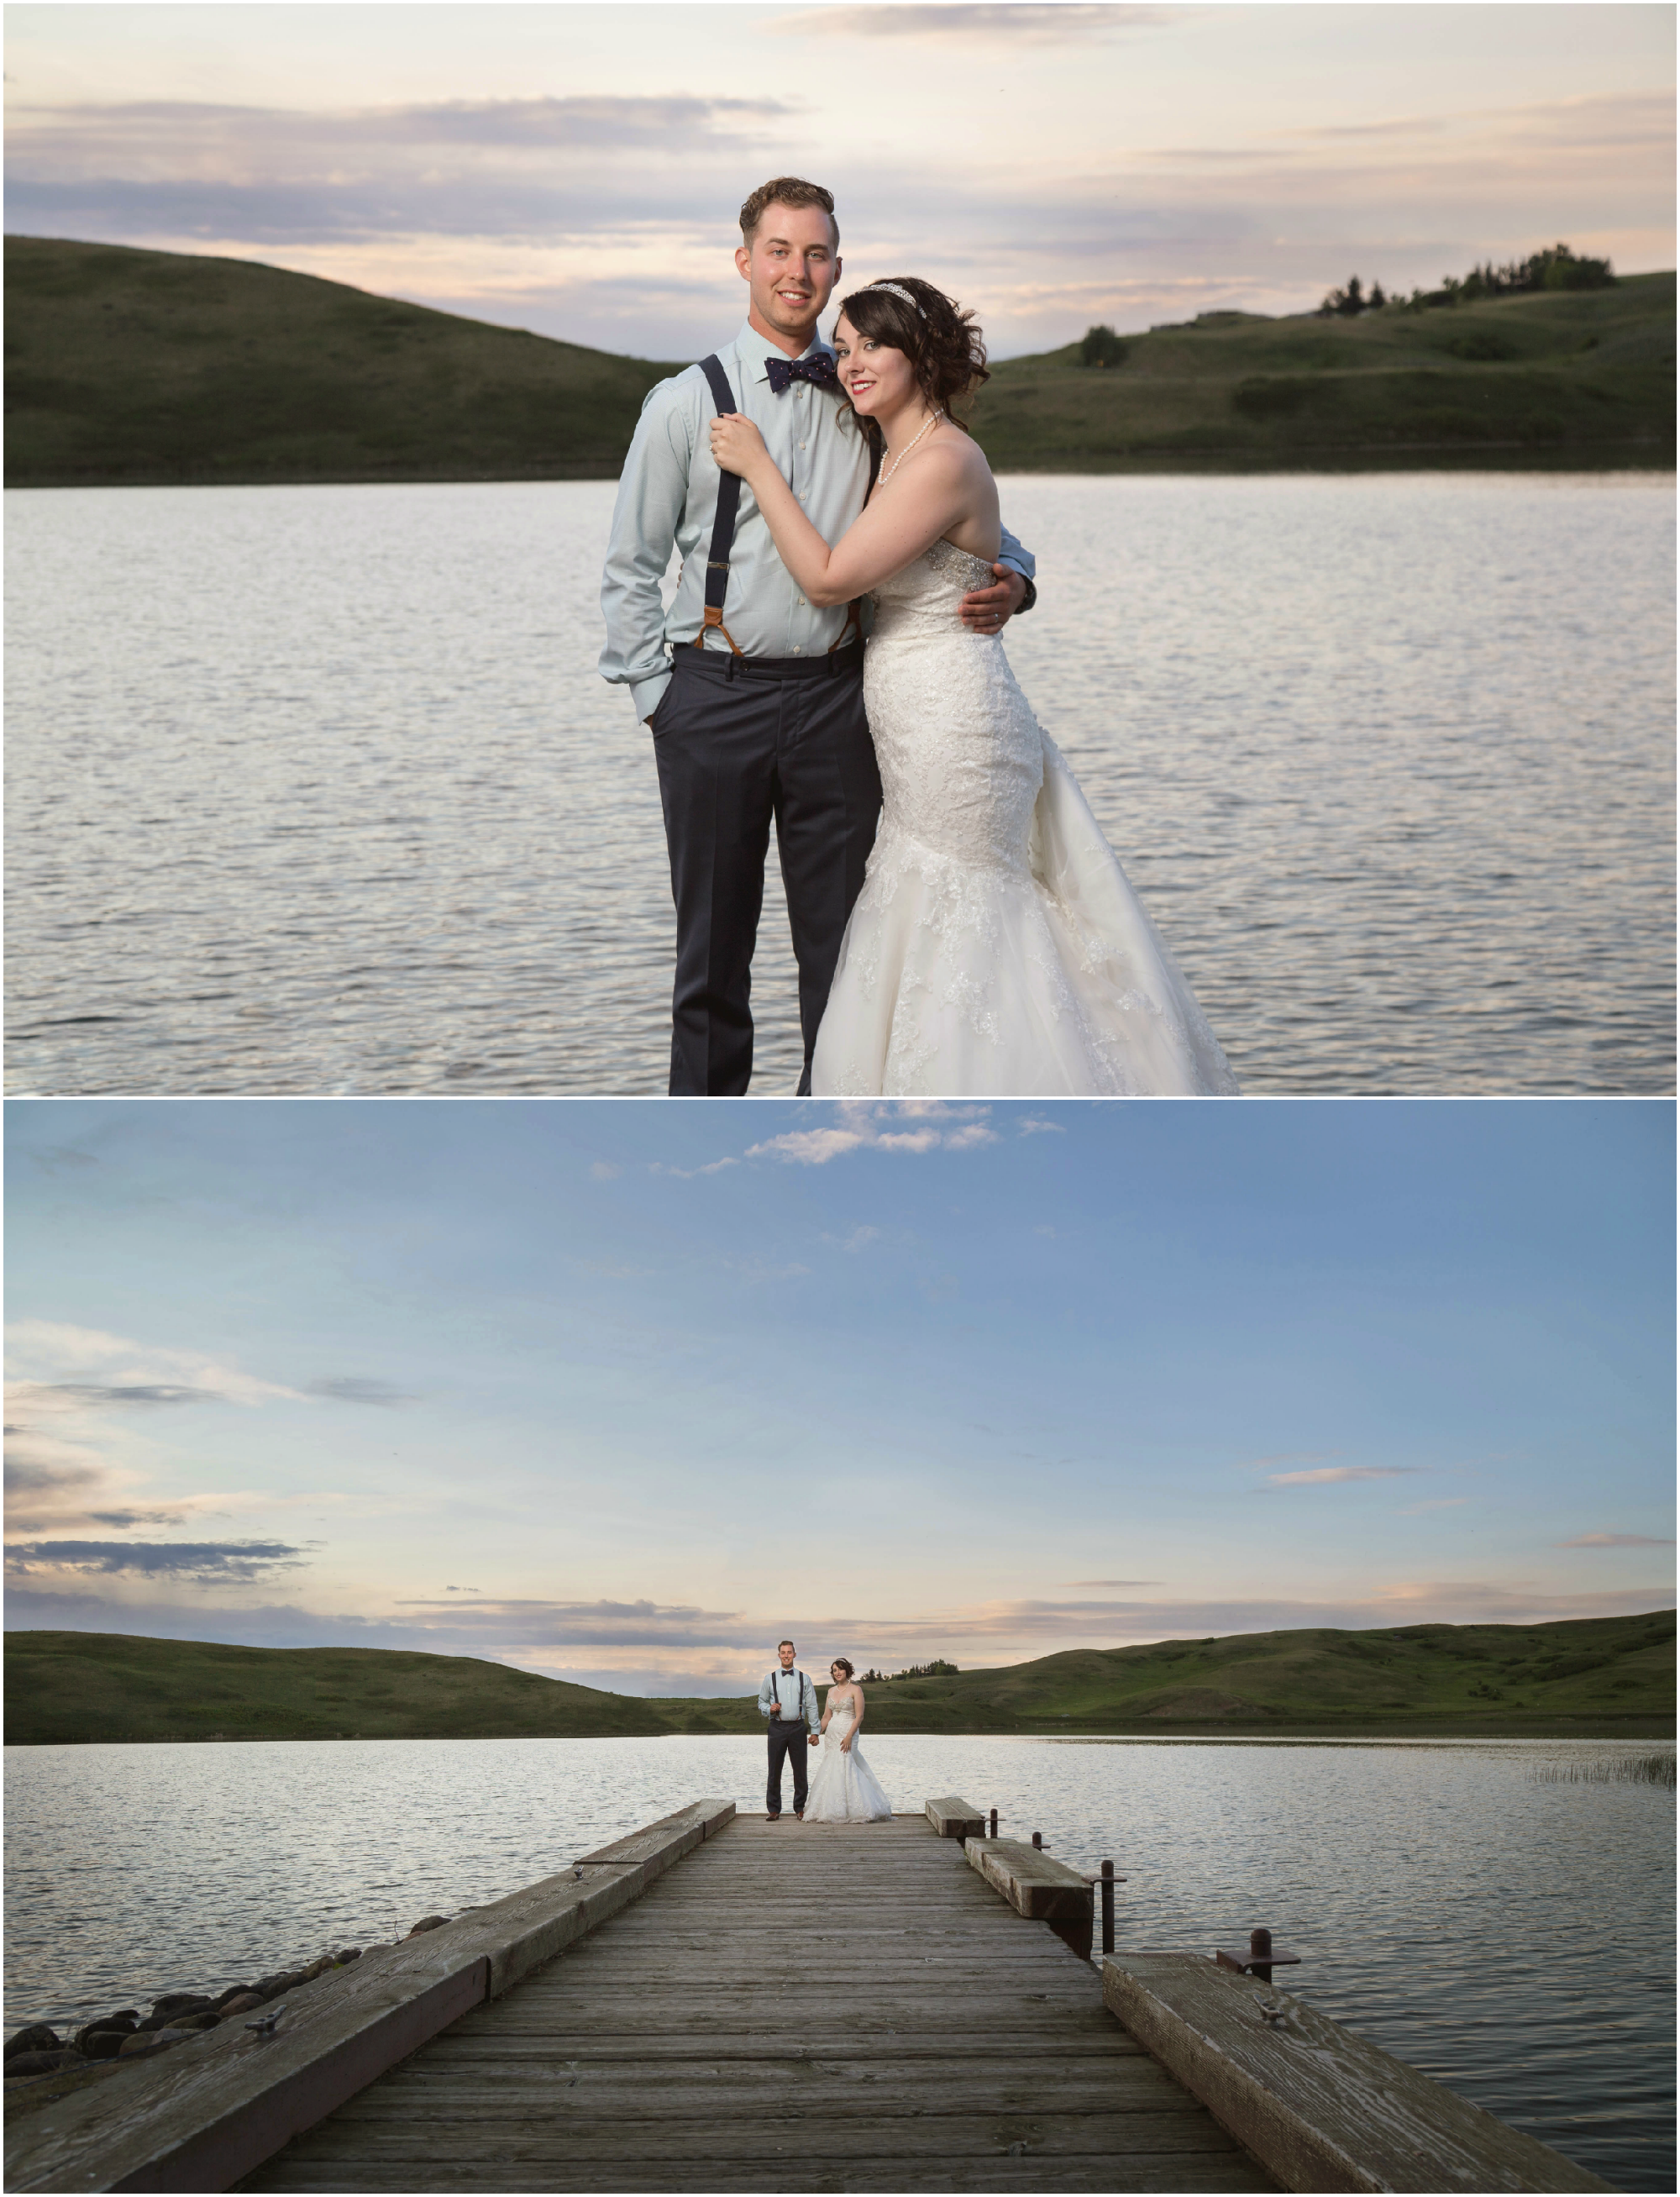 elkwater_wedding_photography_31.png